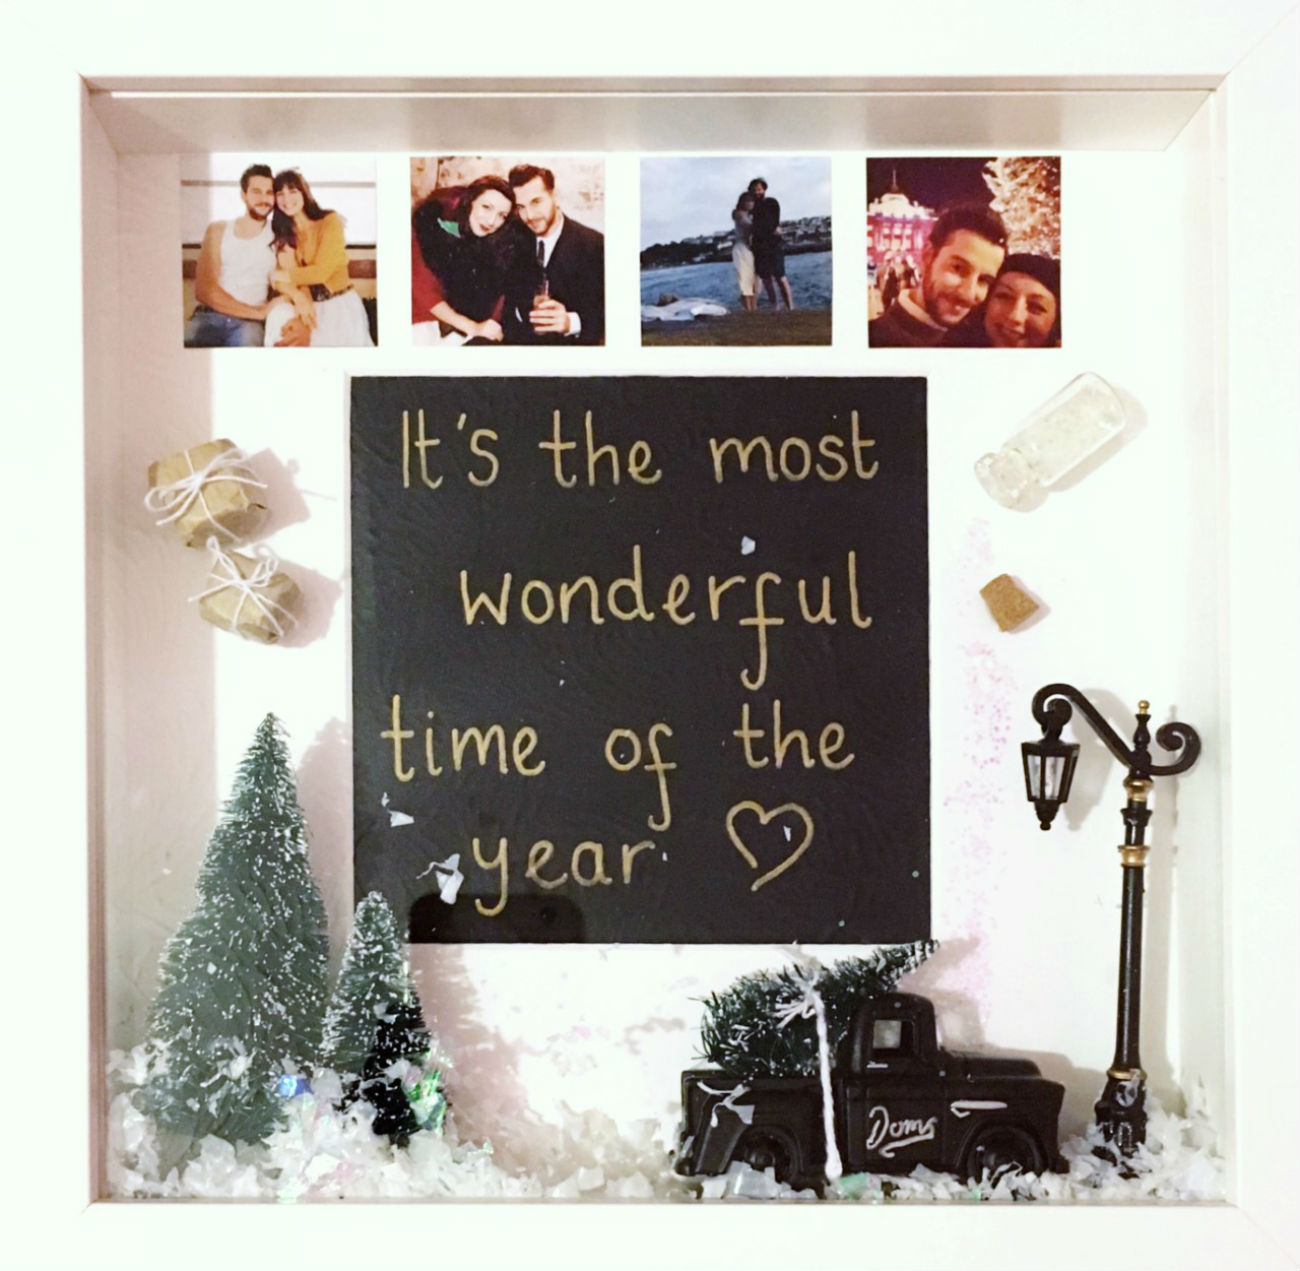 Homemade gift ideas, crafts, creative gifts, personalised gifts, christmas gifts